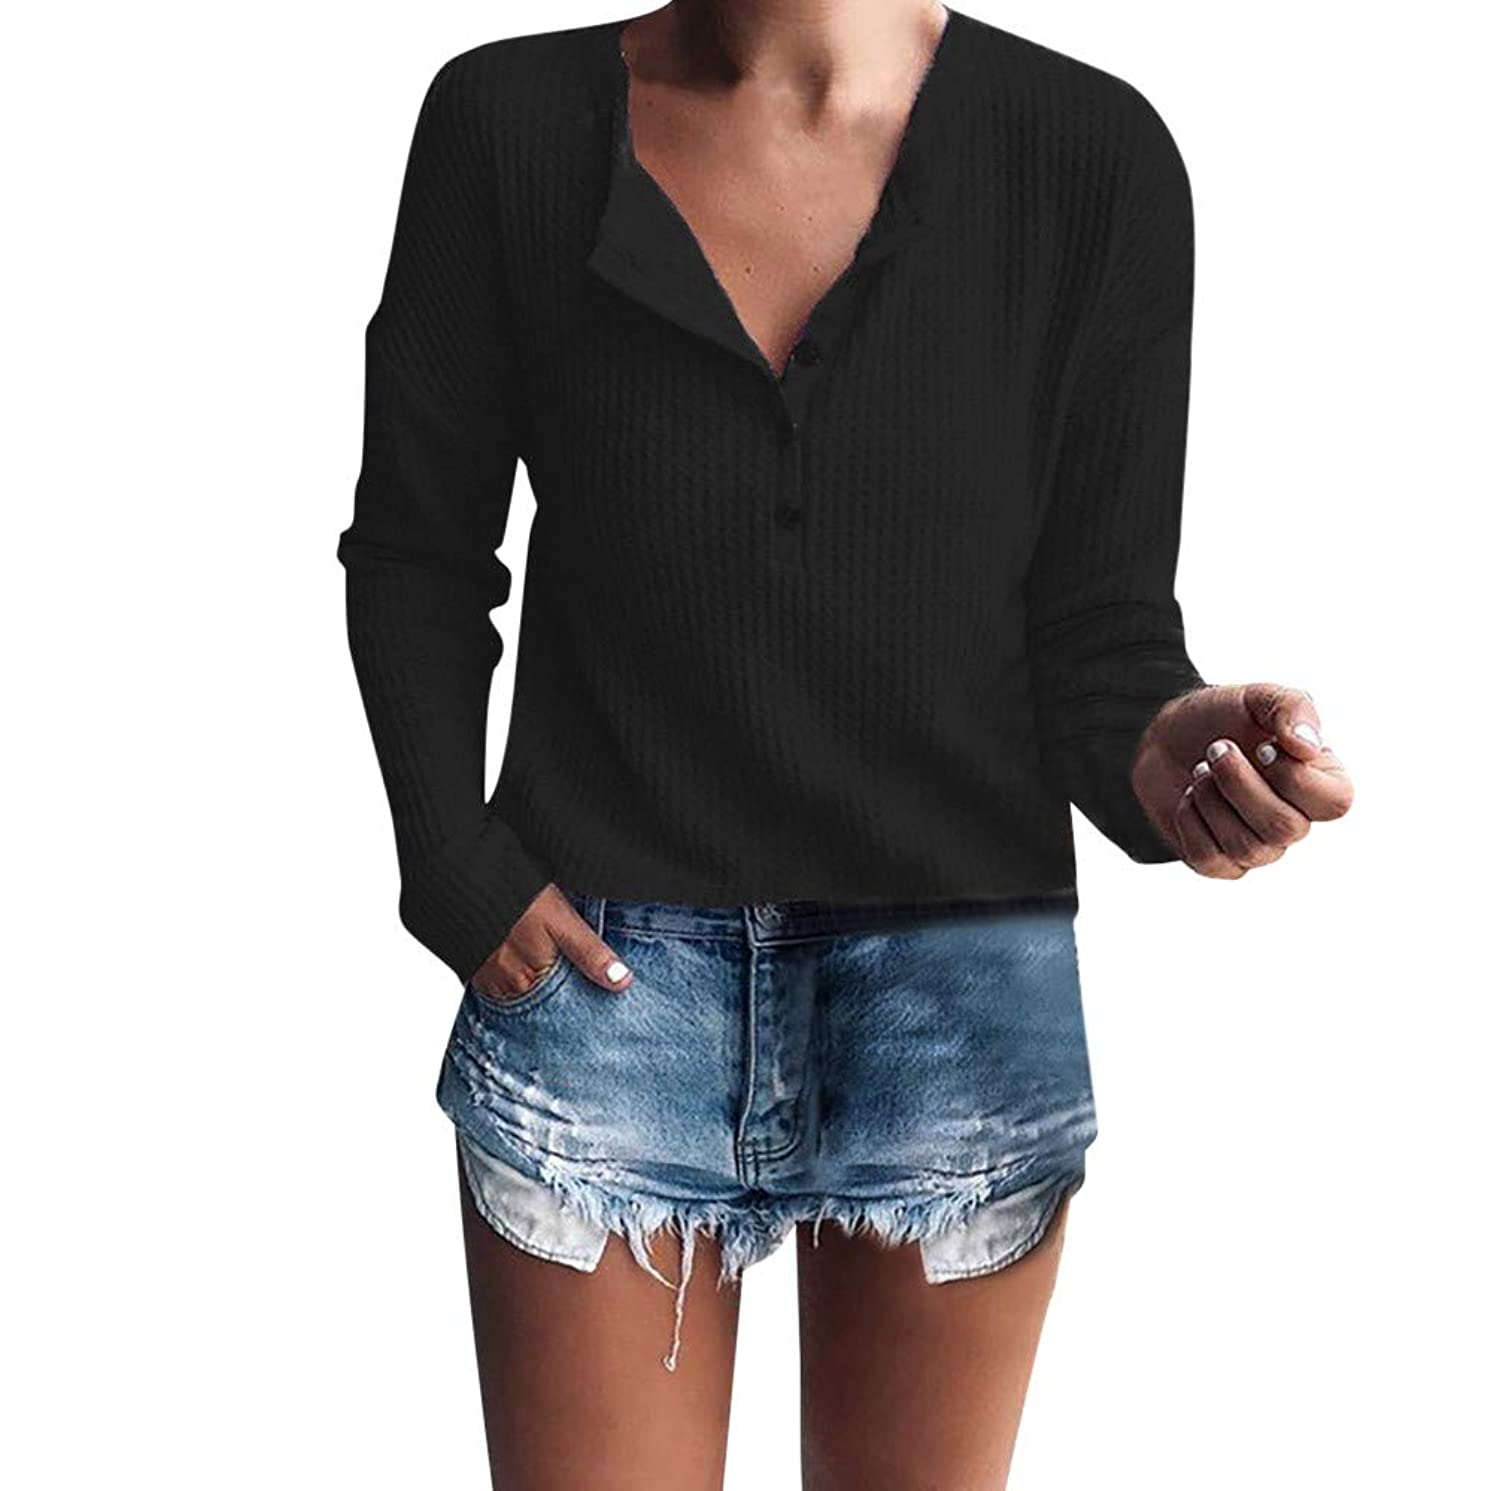 LISTHA Clearance V Neck Sweater Pullover Women Long Sleeve Knitted Blouse Casual Tops